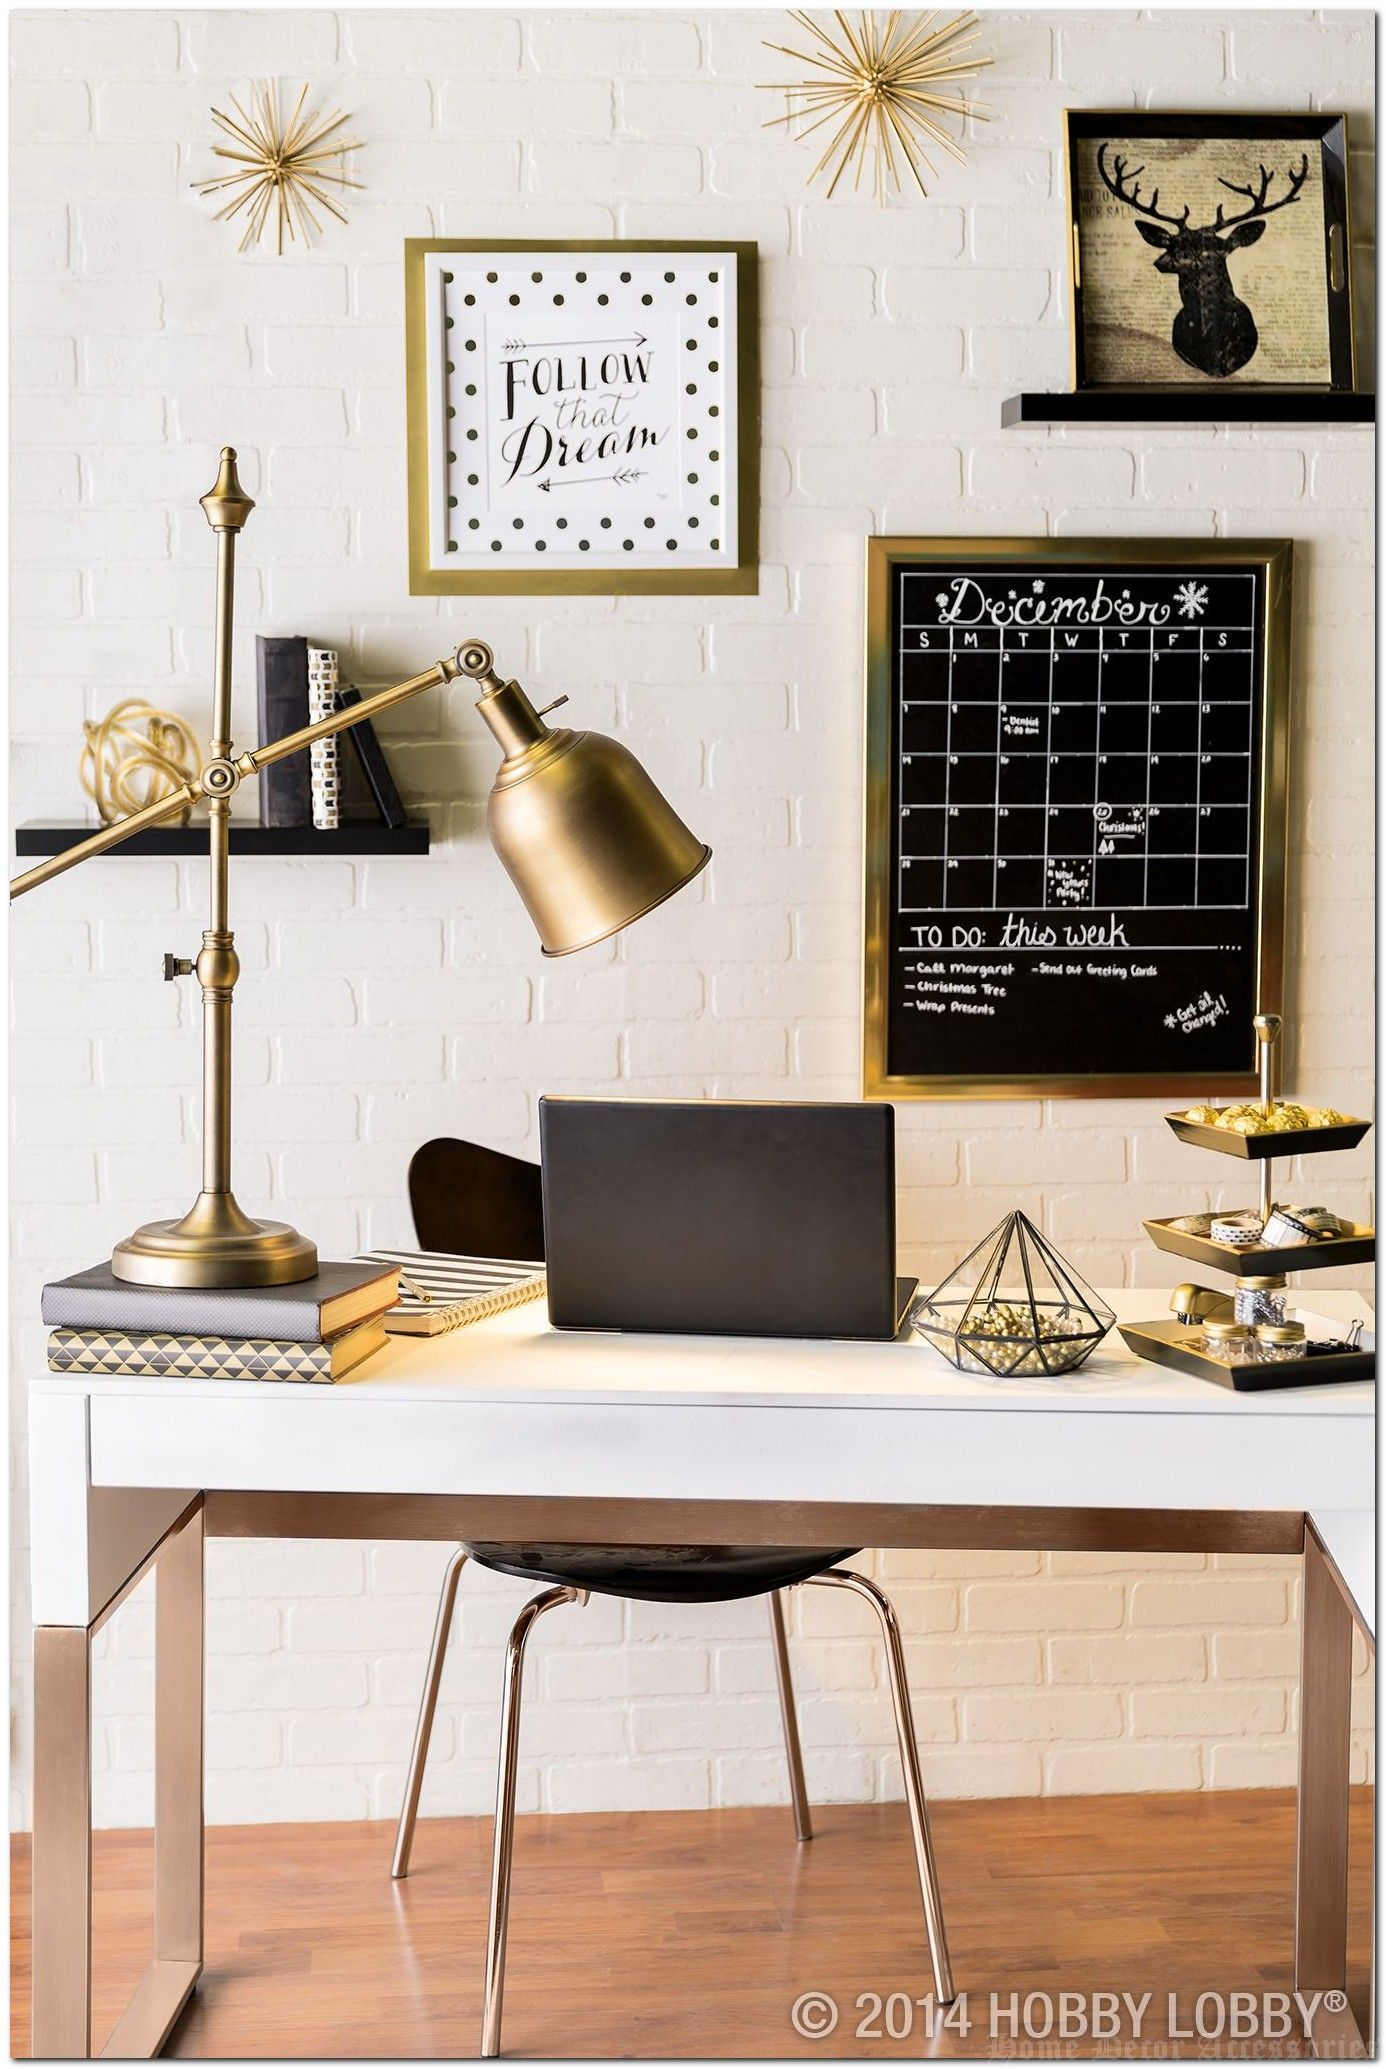 Home Decor Accessories 389 In 2020 Gold Home Decor Home Office Decor Home Office Design